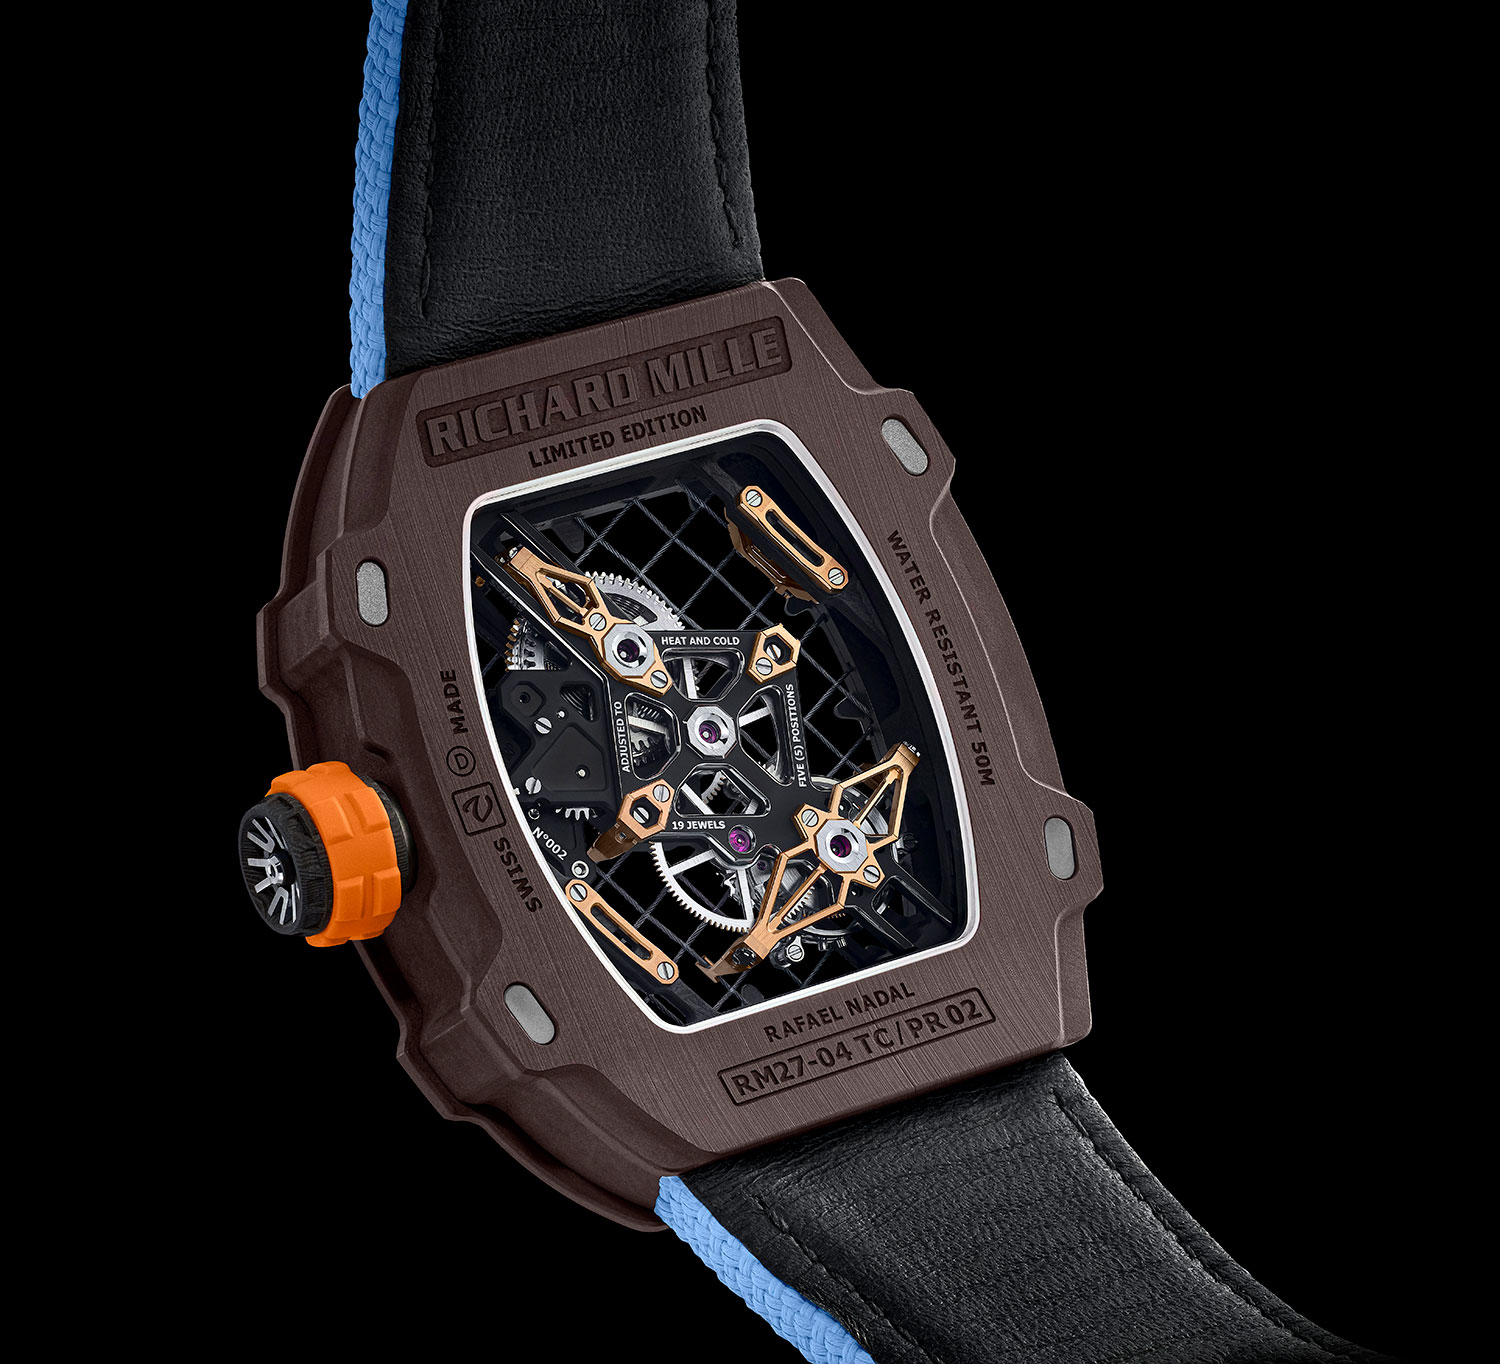 Trasera del Richard Mille RM 27-04